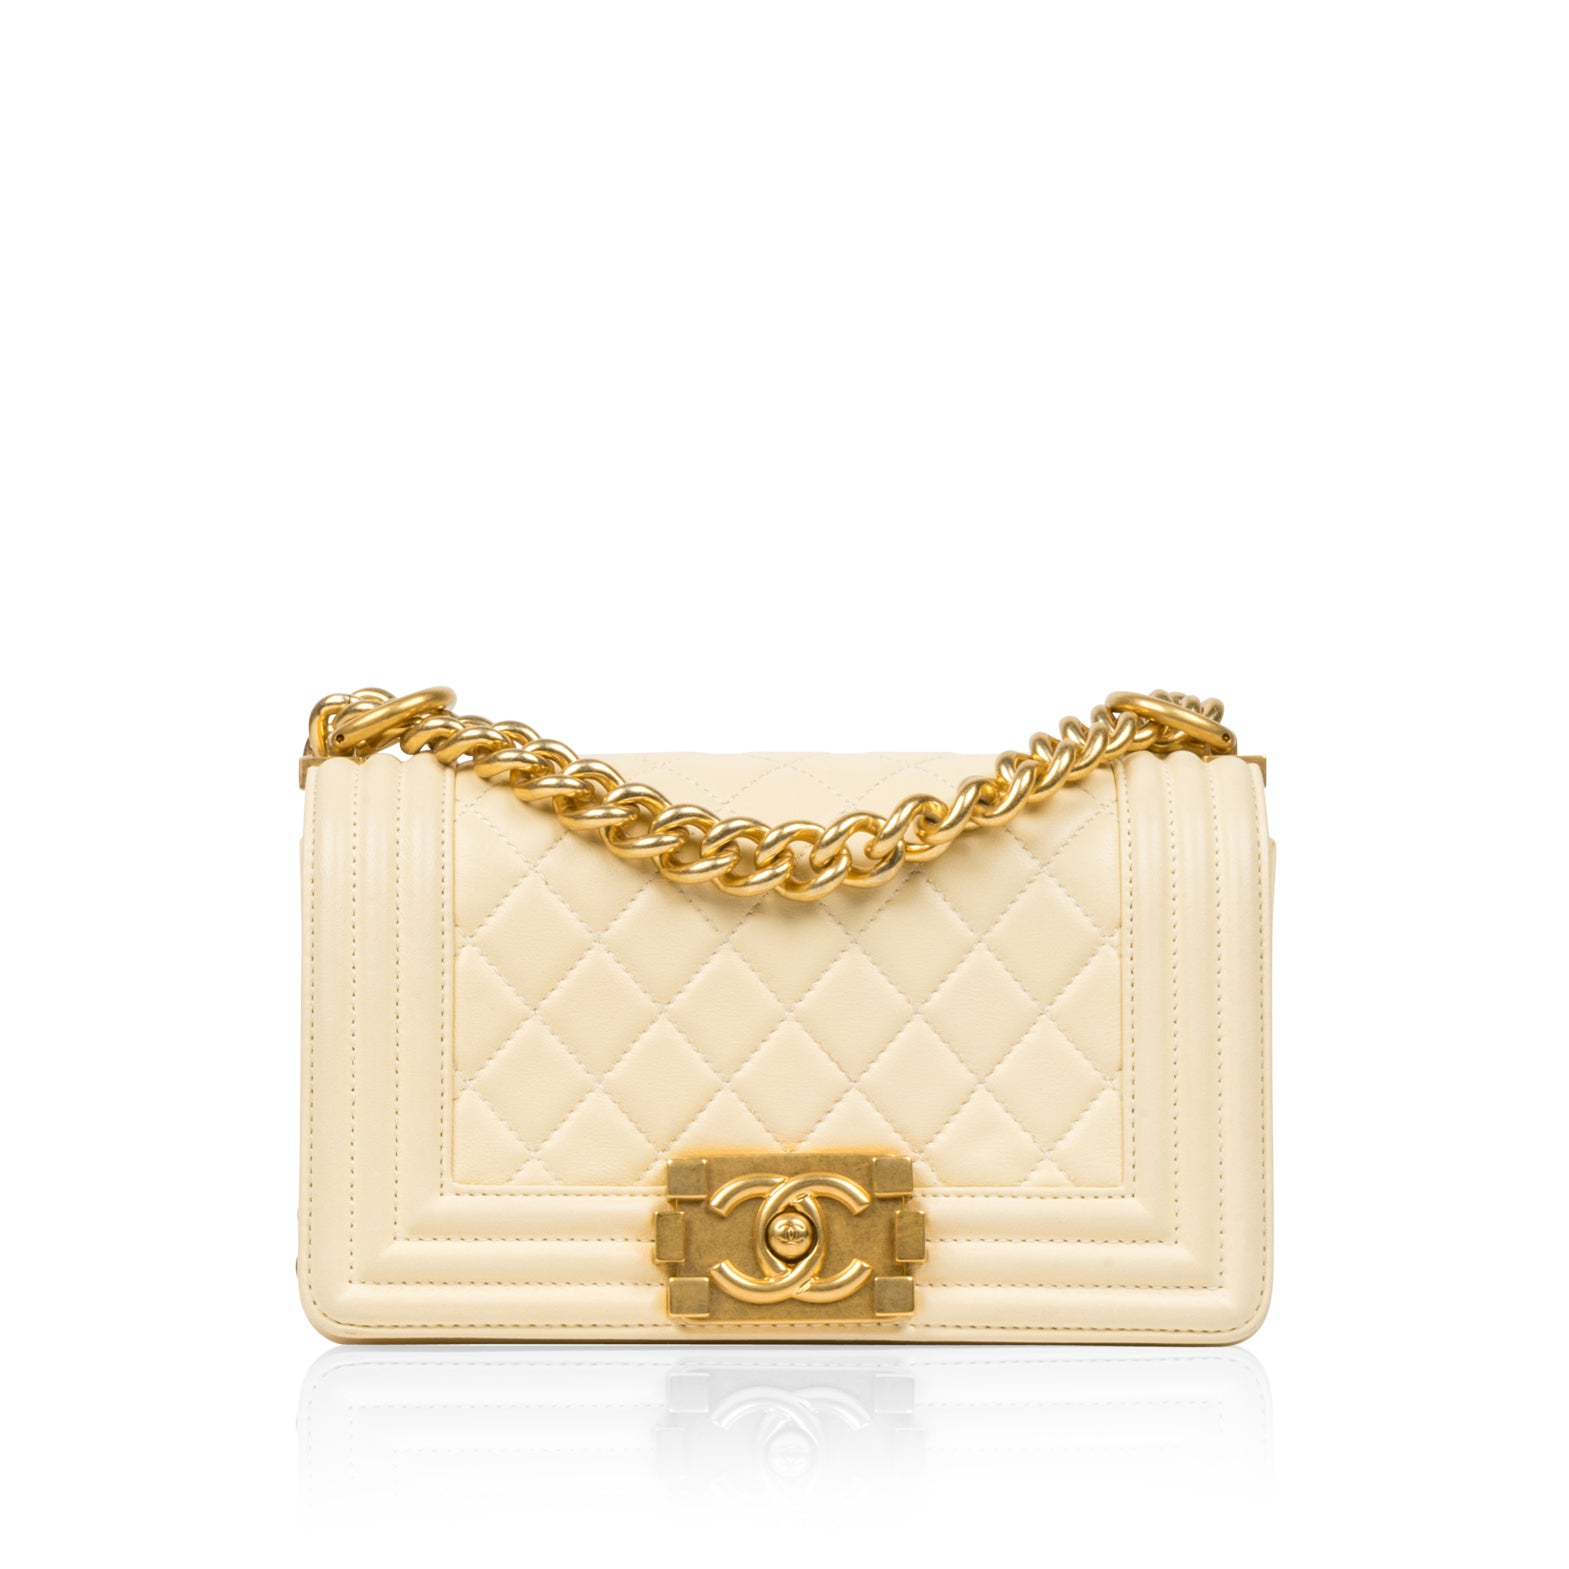 312058418a7a Chanel - Small Boy Bag - Cream Lambskin Leather - Gold Hardware ...